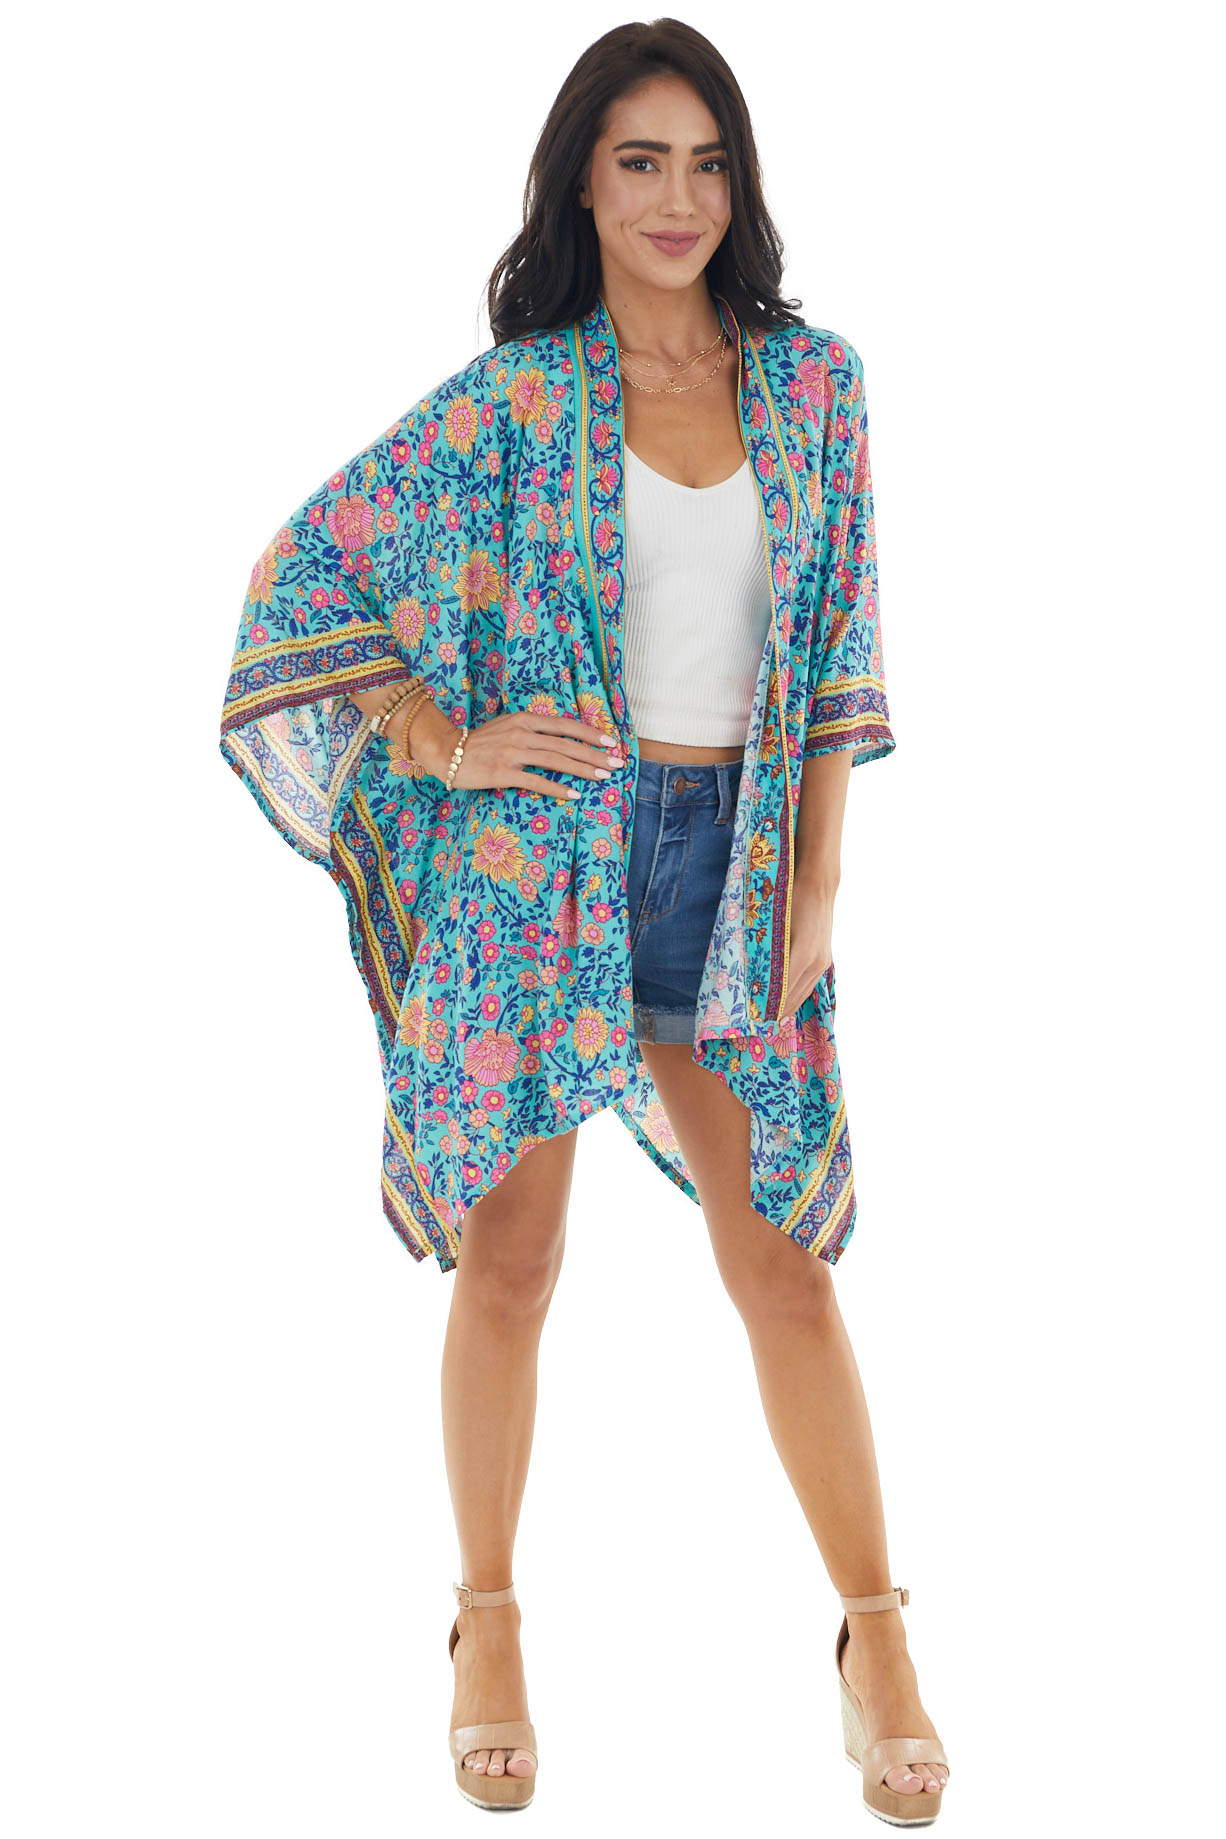 Teal Multicolor Floral Print 3/4 Sleeve Flowy Fit Kimono